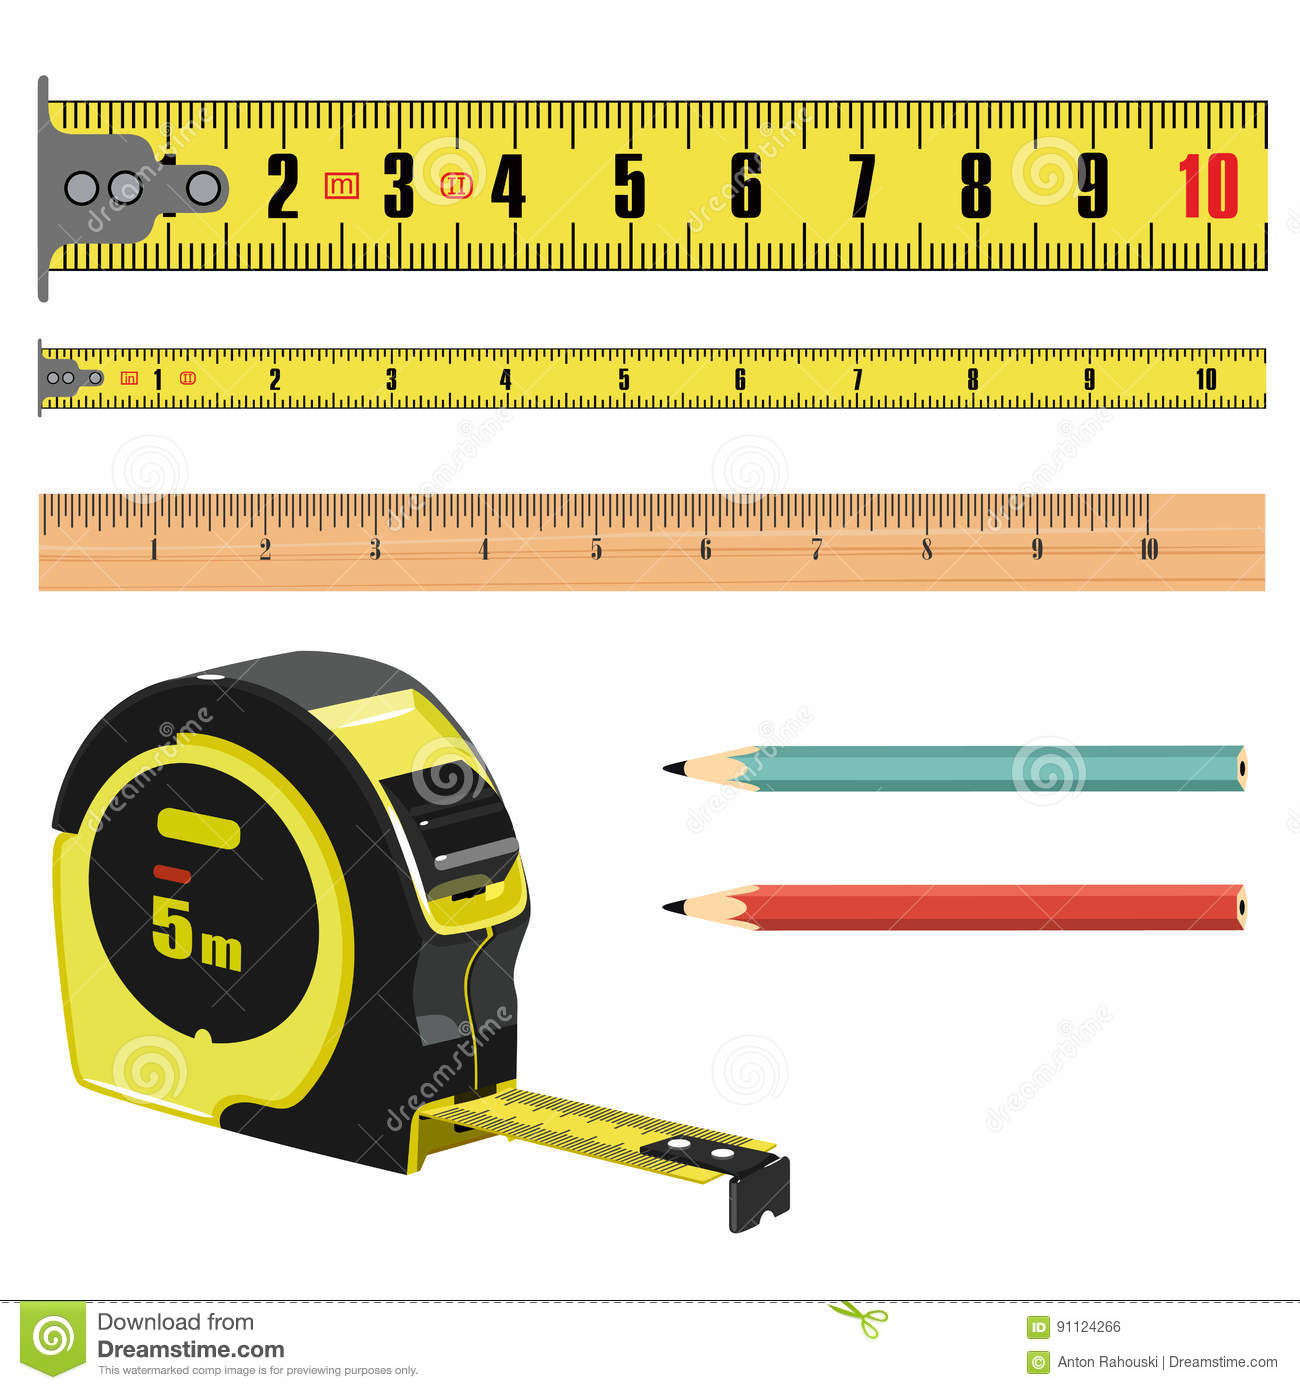 worksheet Measuring Centimeters illustration tape measure length in centimeters building roulette royalty free illustration